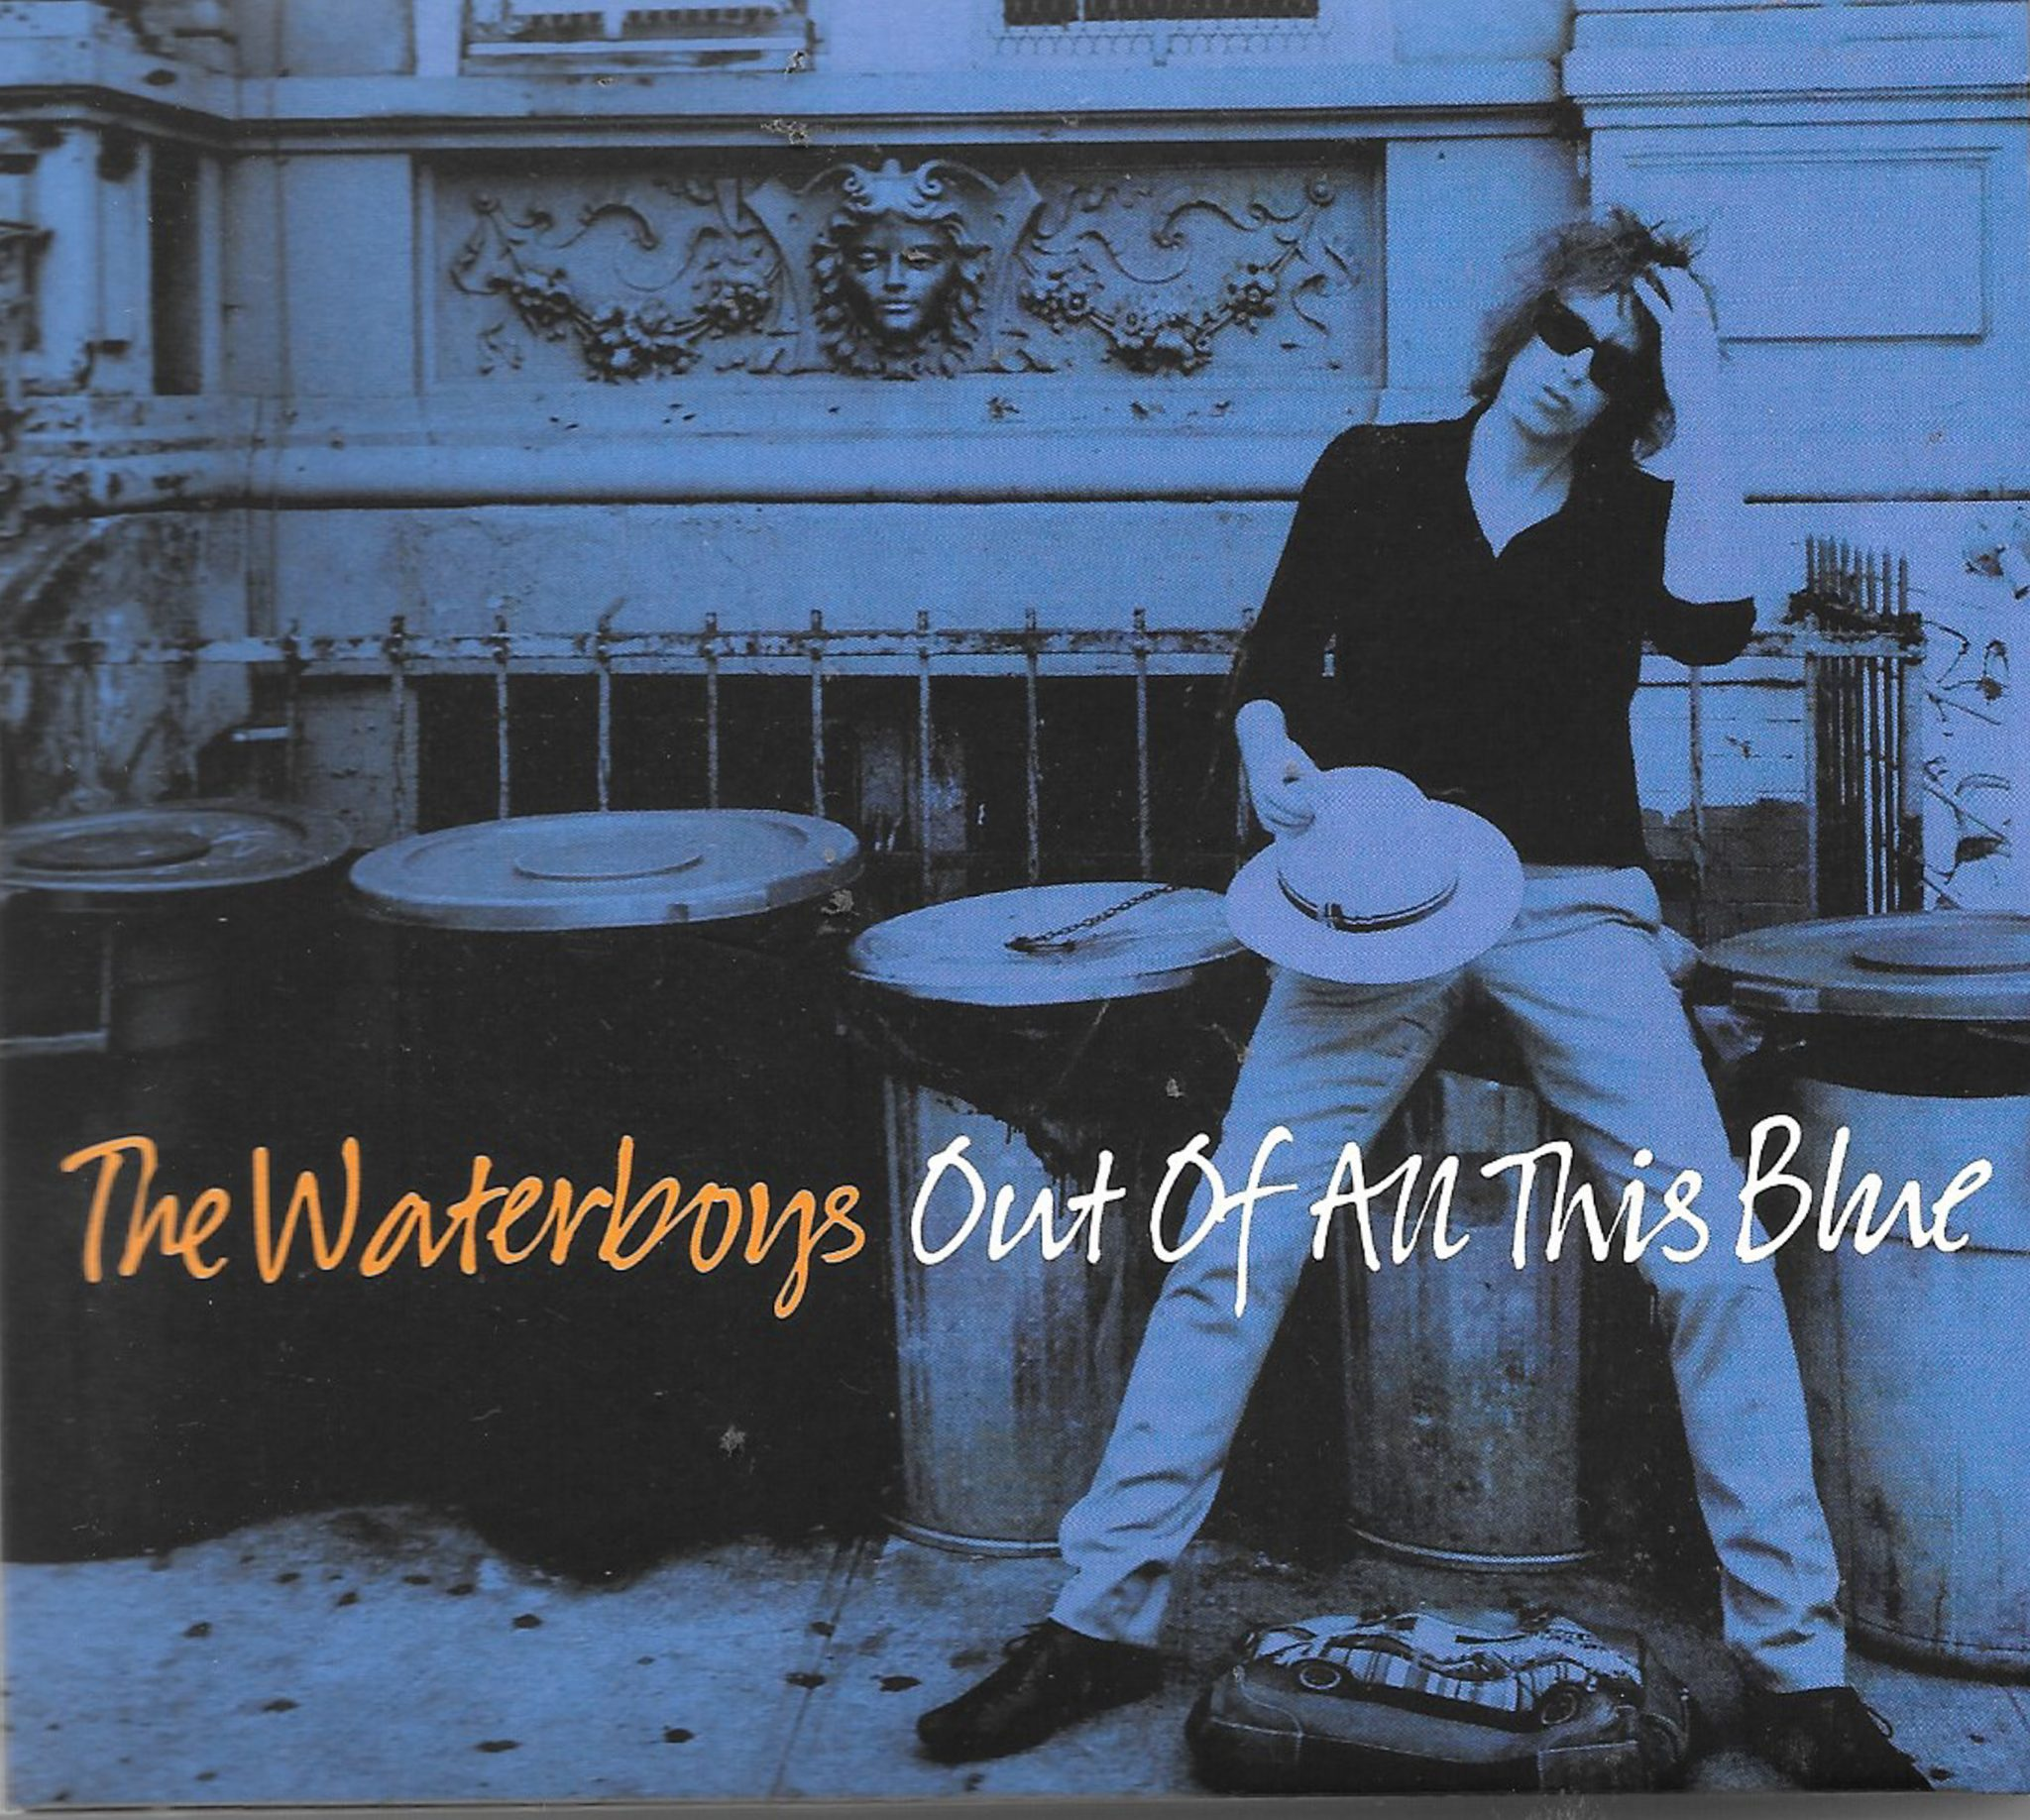 The Waterboys Twelfth Album Swims Out of All This Blue